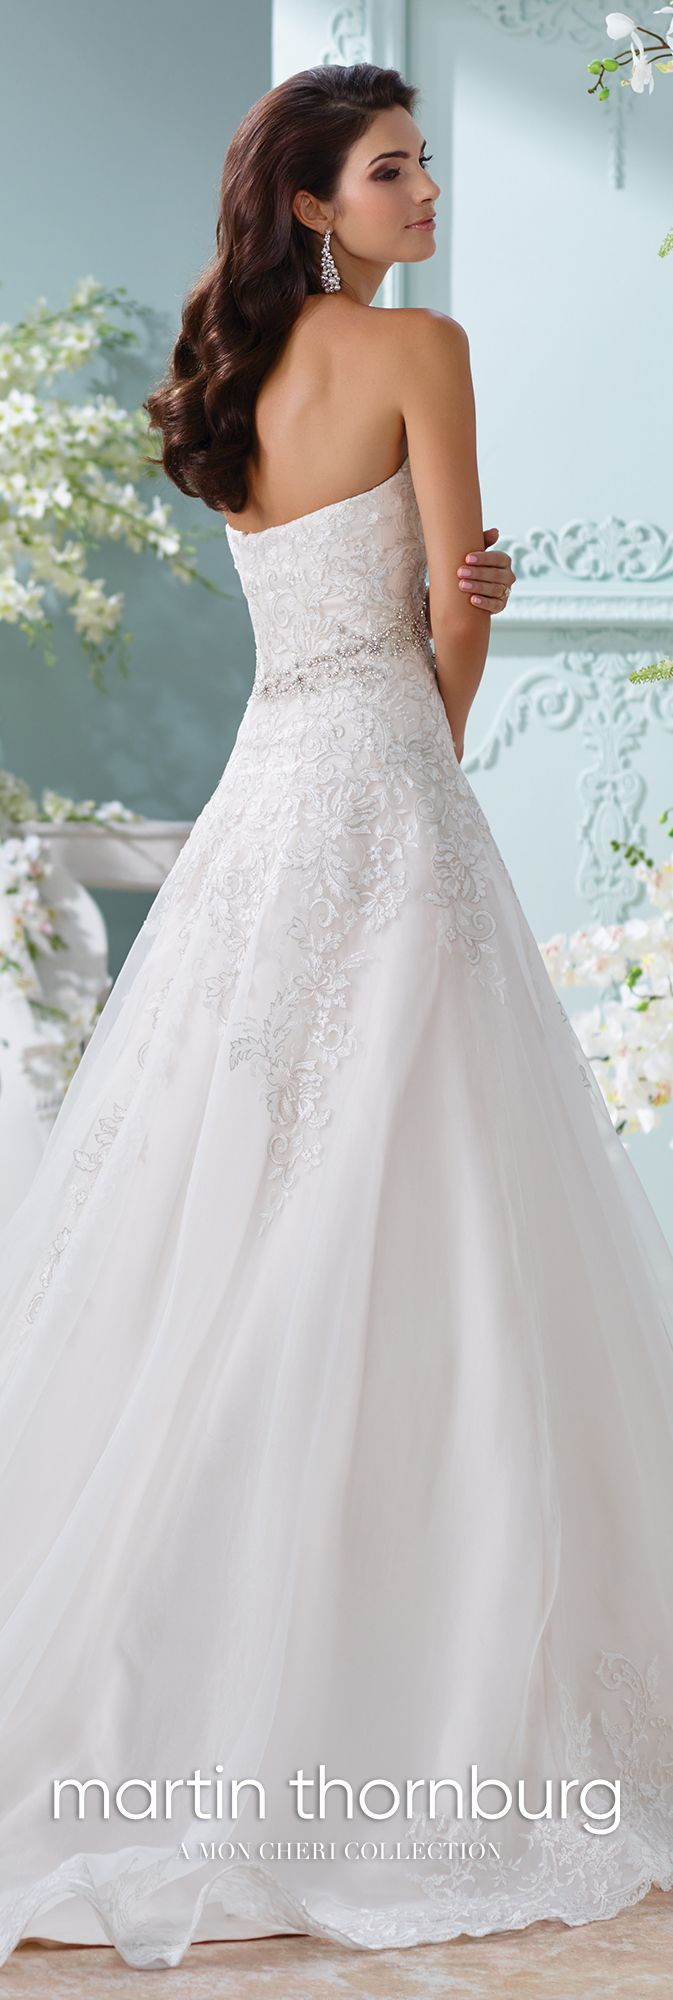 Martin Thornburg 116210 – Laina - Strapless organza and lace Aline wedding dress,metallic Schiffli lace appliqués over satin gown with sweetheart neckline, hand-beaded jeweled motif at natural waist, scalloped hem and chapel length train, detachable spaghetti and halter straps included.